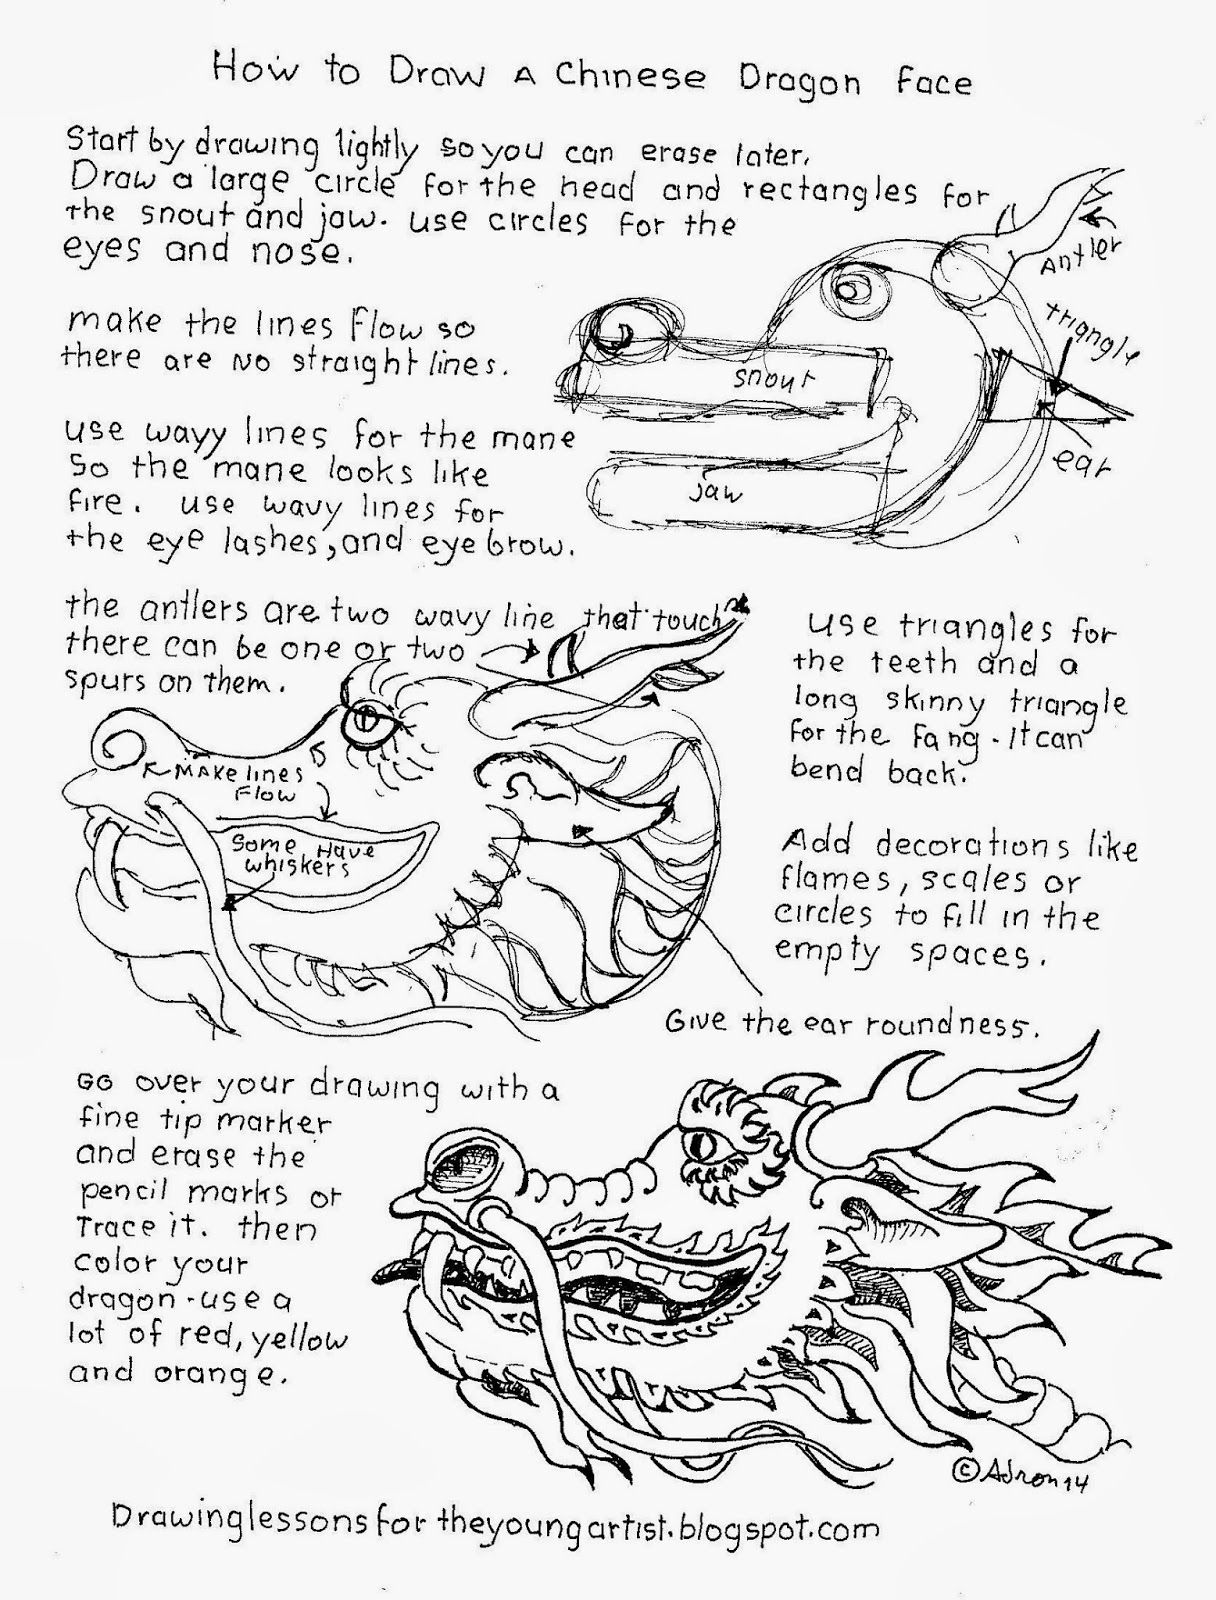 How To Draw Worksheets For The Young Artist How To Draw The Head Of A Chinese Dragon Free